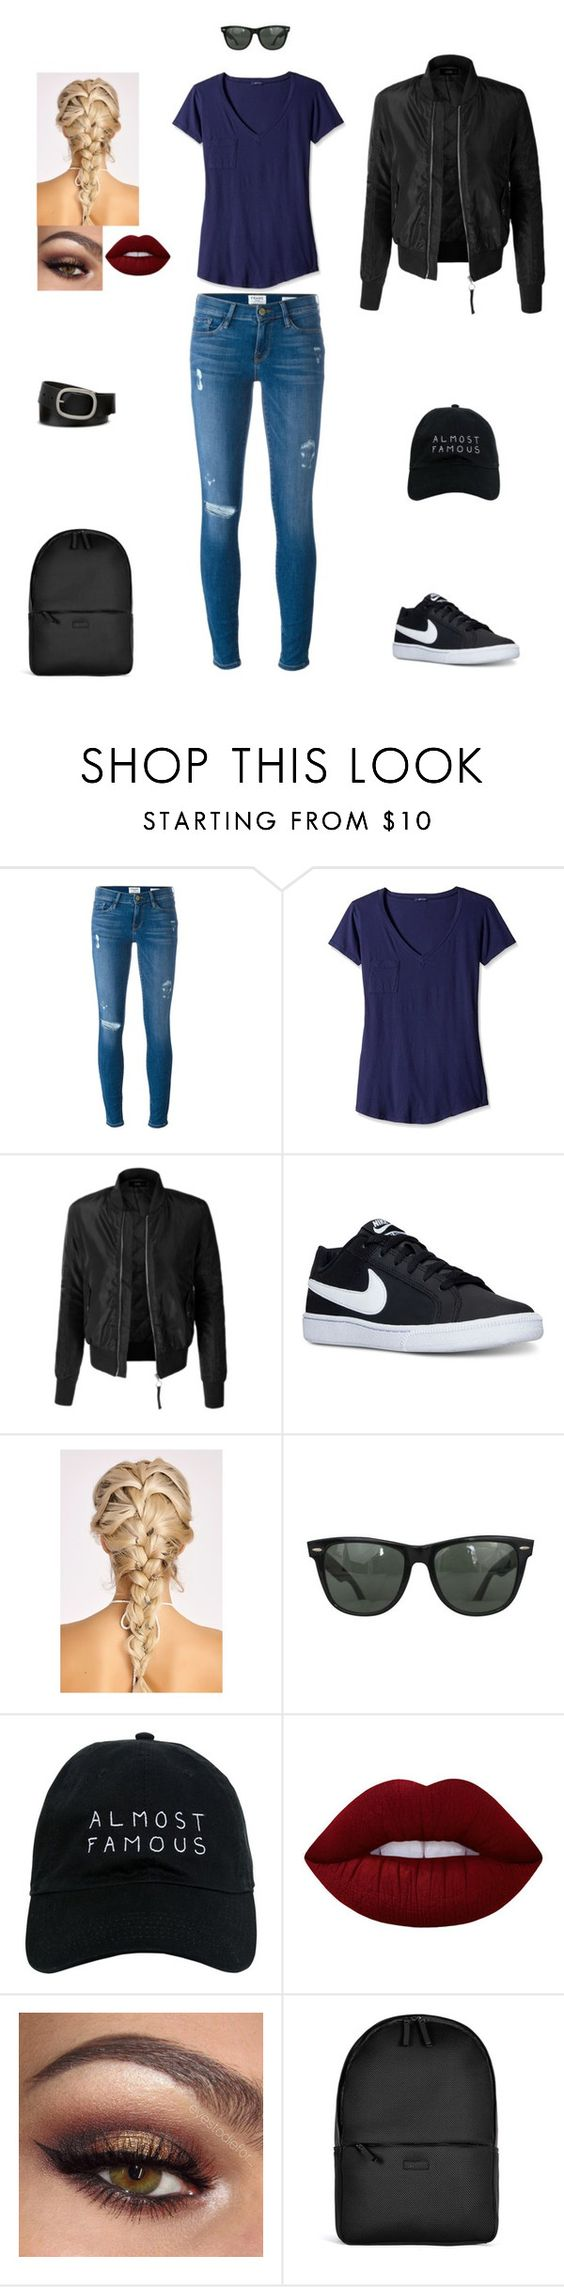 """Untitled #84"" by hannahchristine18 on Polyvore featuring Frame Denim, LAmade, LE3NO, NIKE, Ray-Ban, Nasaseasons, Lime Crime, Rains and Mixit"